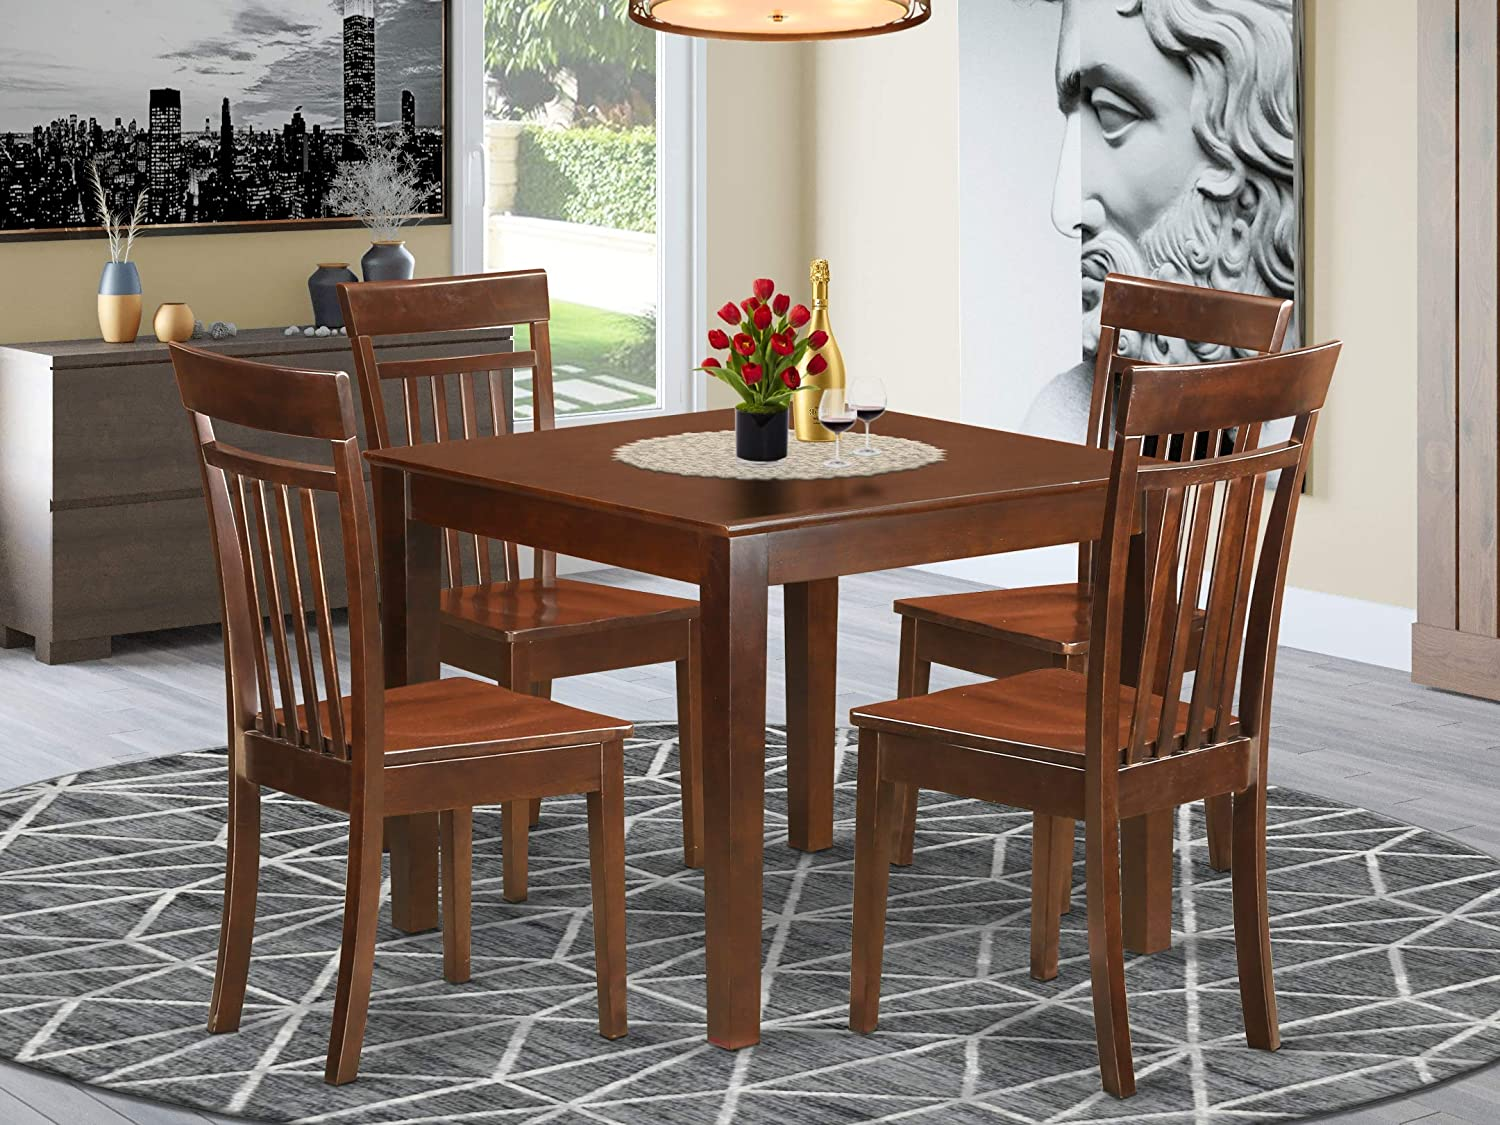 Amazon Com 5 Pcsmall Kitchen Table Set With A Dining Table And 4 Dining Chairs In Mahogany Table Chair Sets